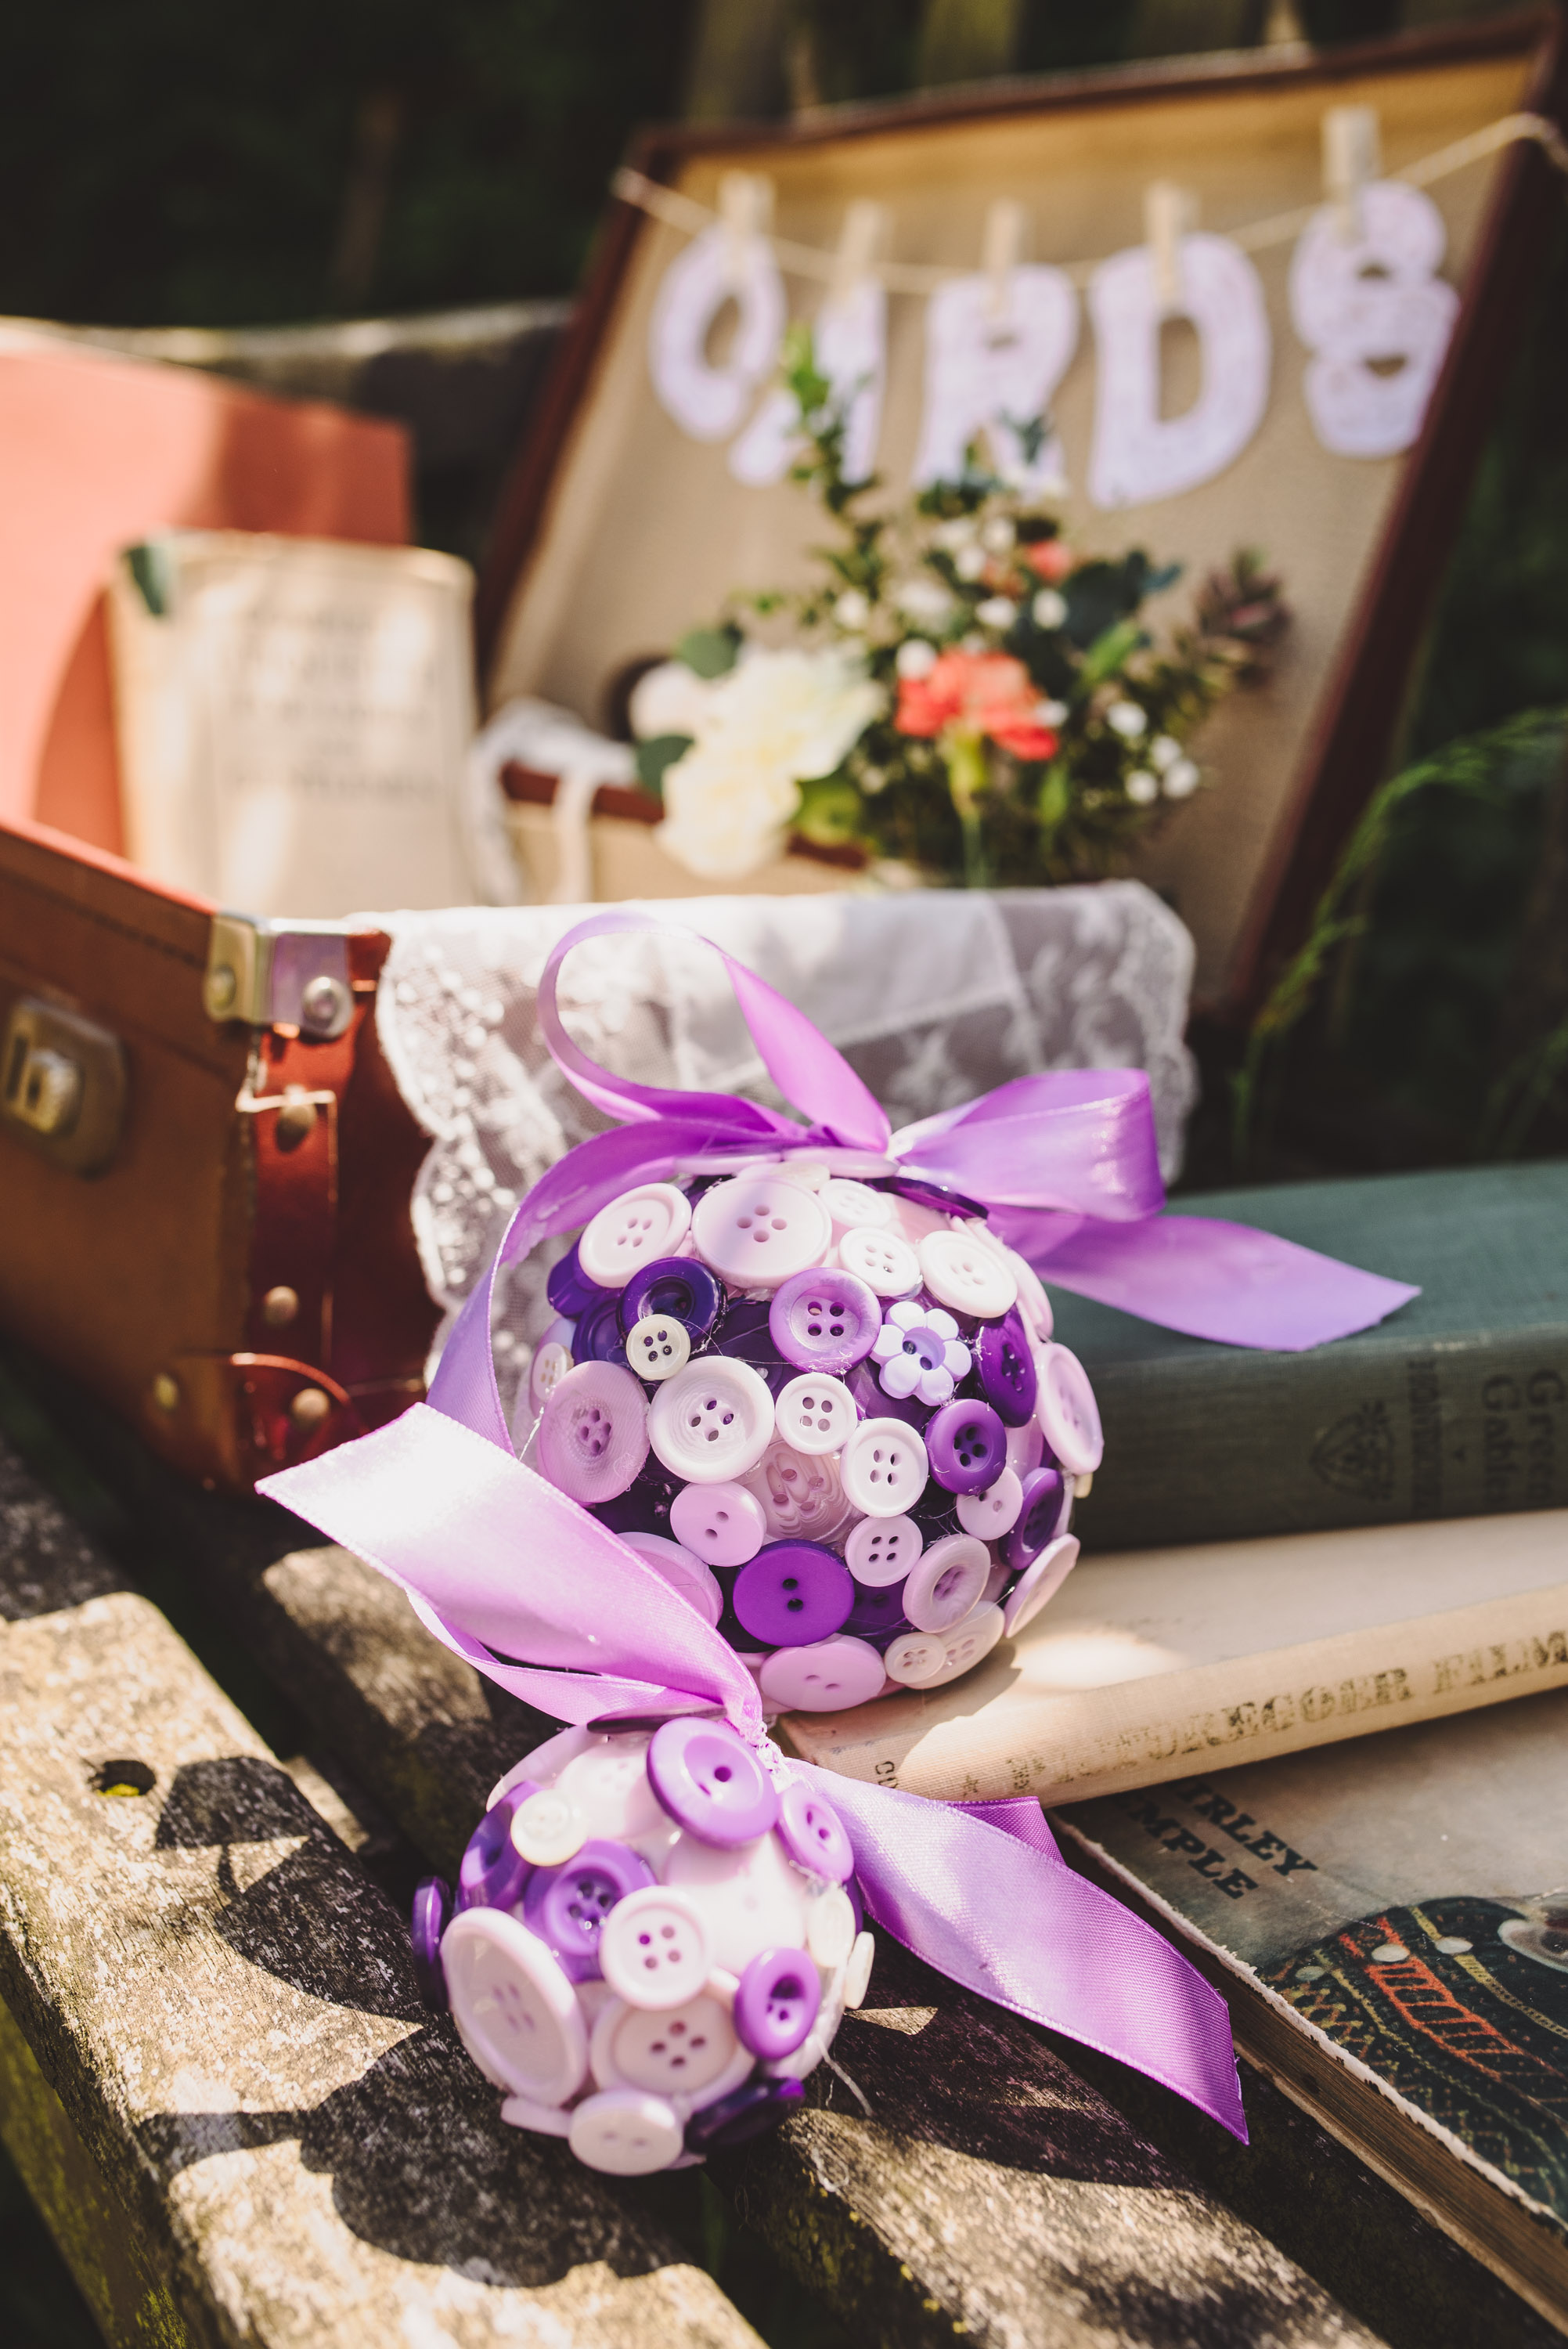 Purple Button Bouquet handmade by: Bespoke Vintage Castle                                              Photo Credit: Becky Ryan Photography